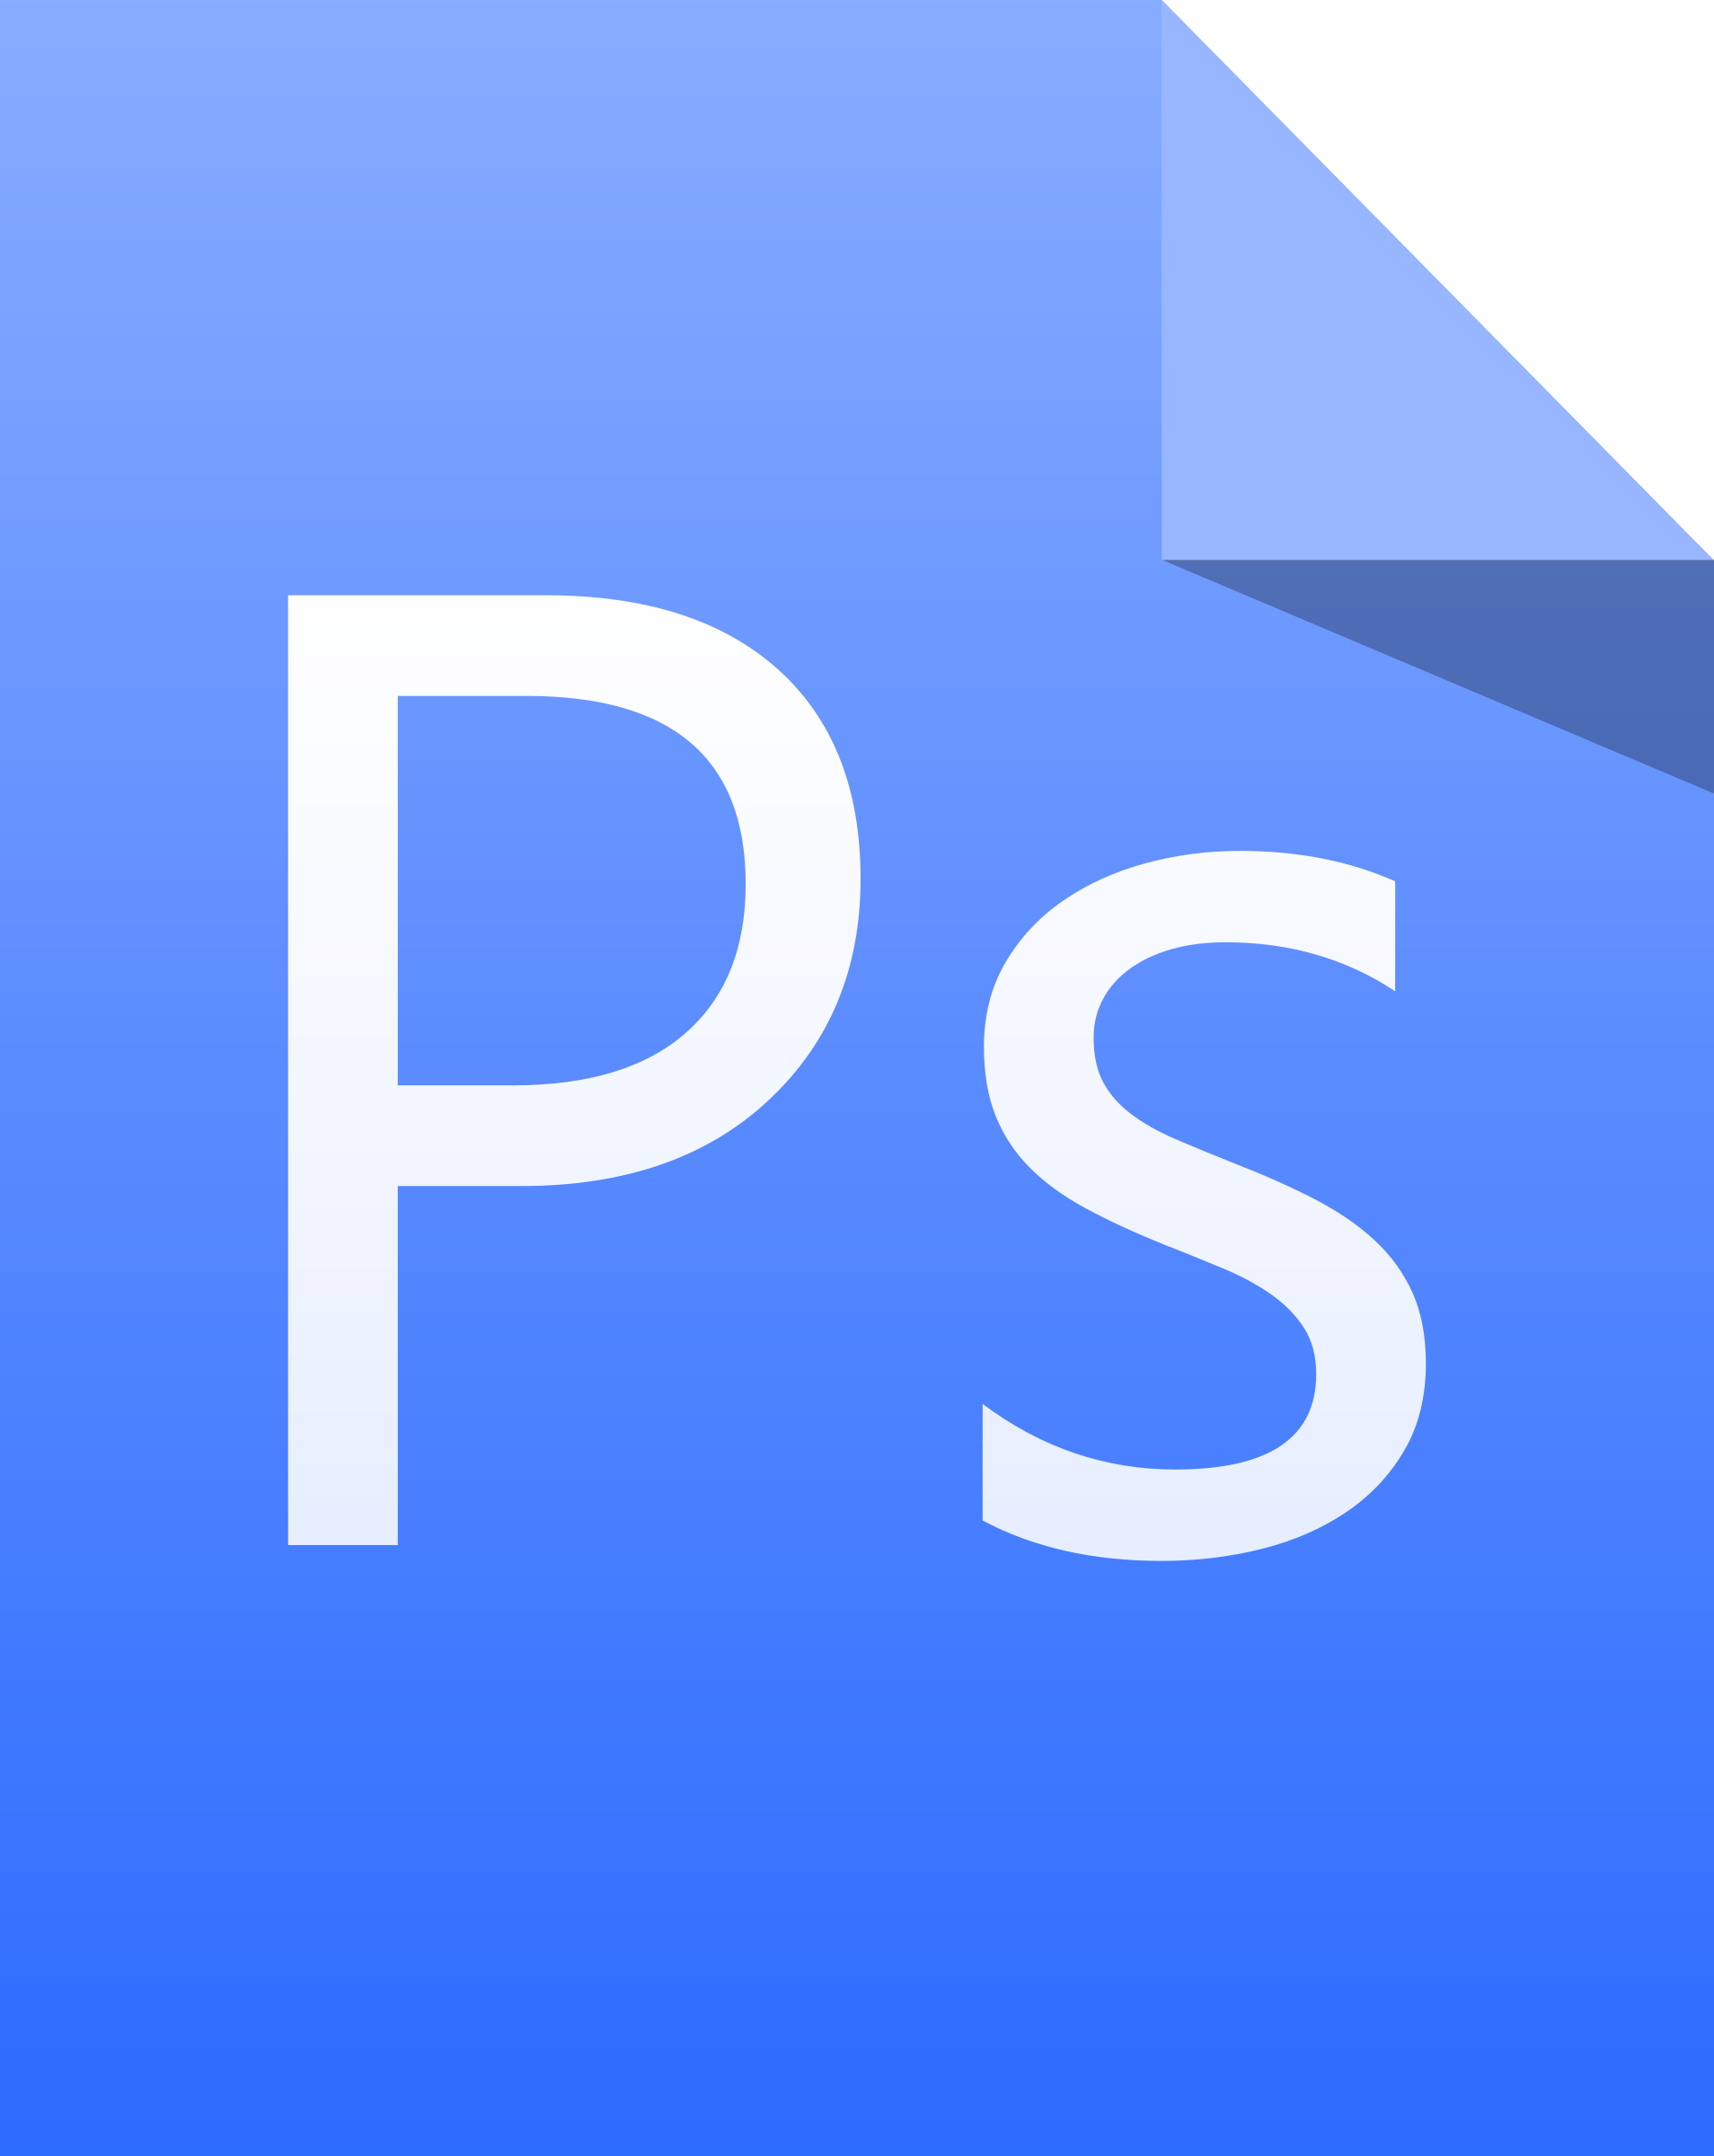 Adobe - Photoshop Design by miroR